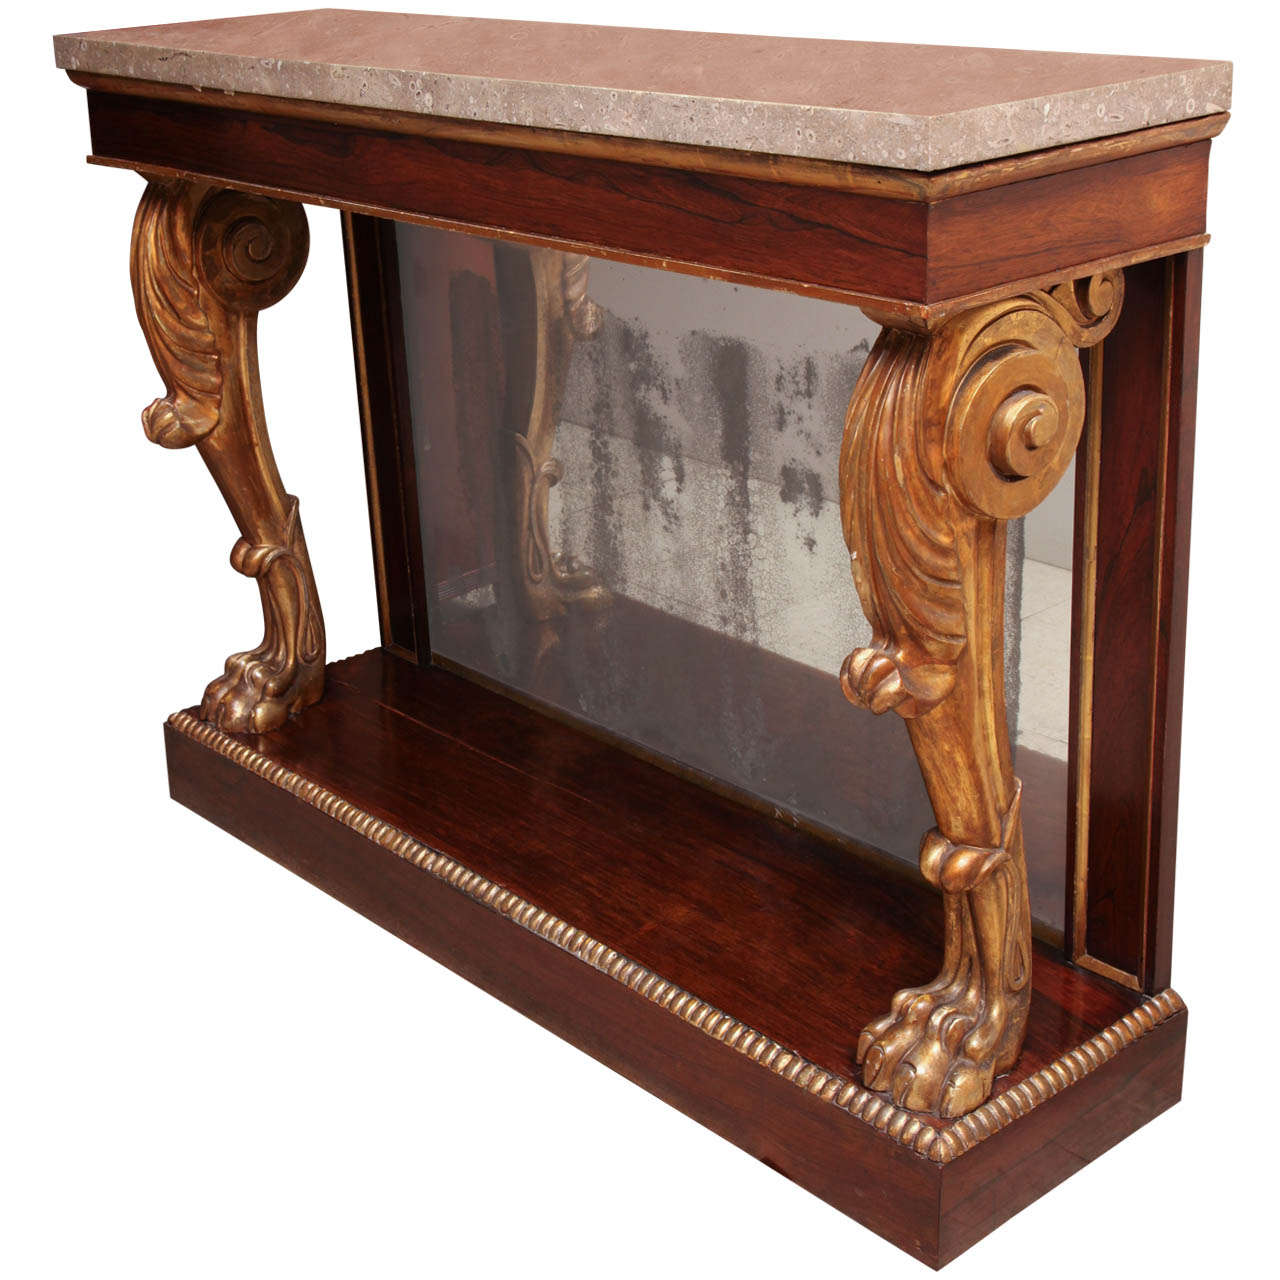 Early 19th Century English, Parcel Gilt Console with Later Fossilized Stone Top